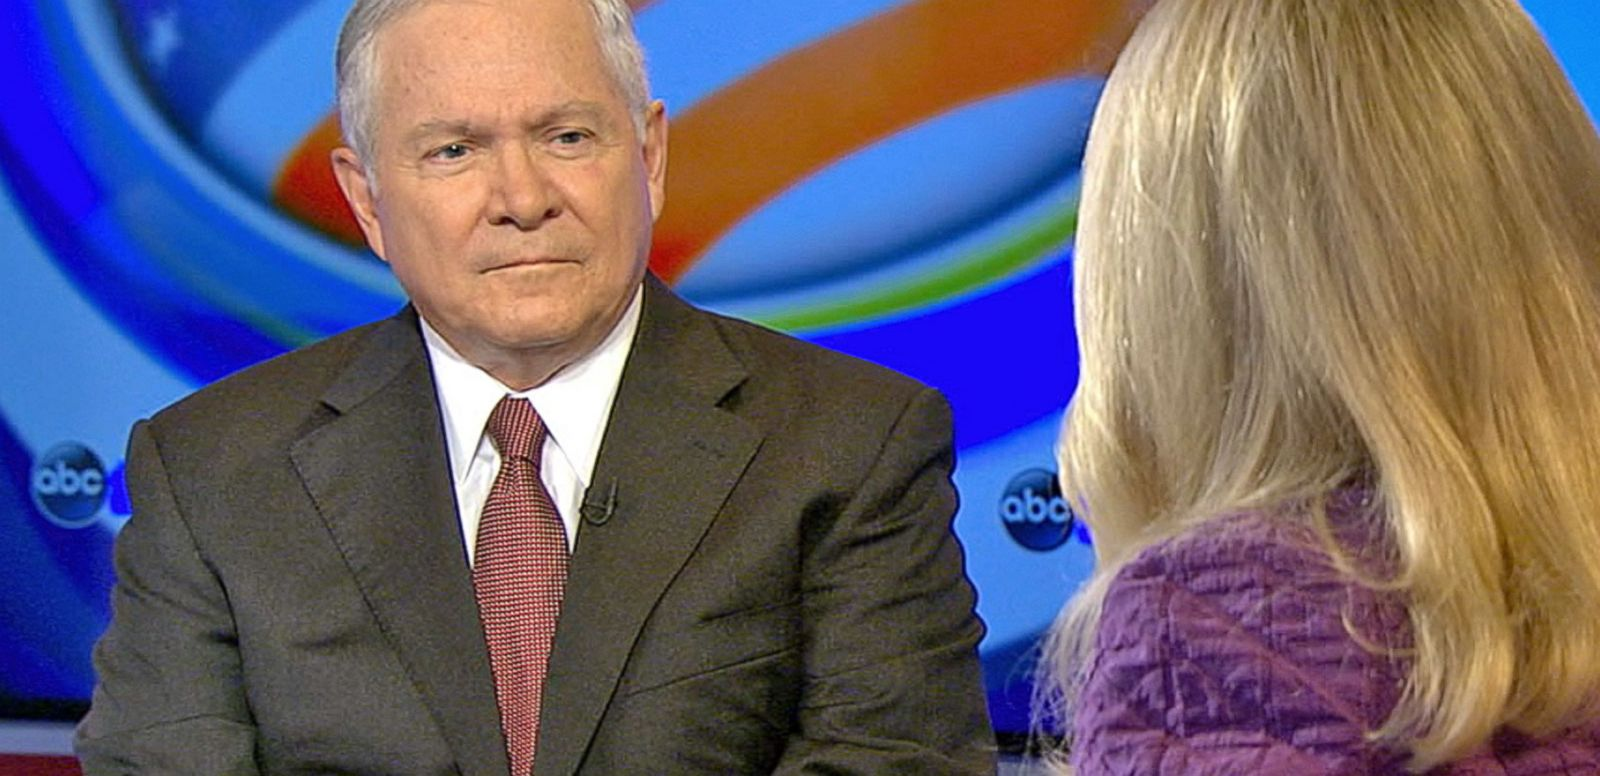 VIDEO: Robert Gates on Trump's Foreign Policy Speech, 2016 Presidential Race